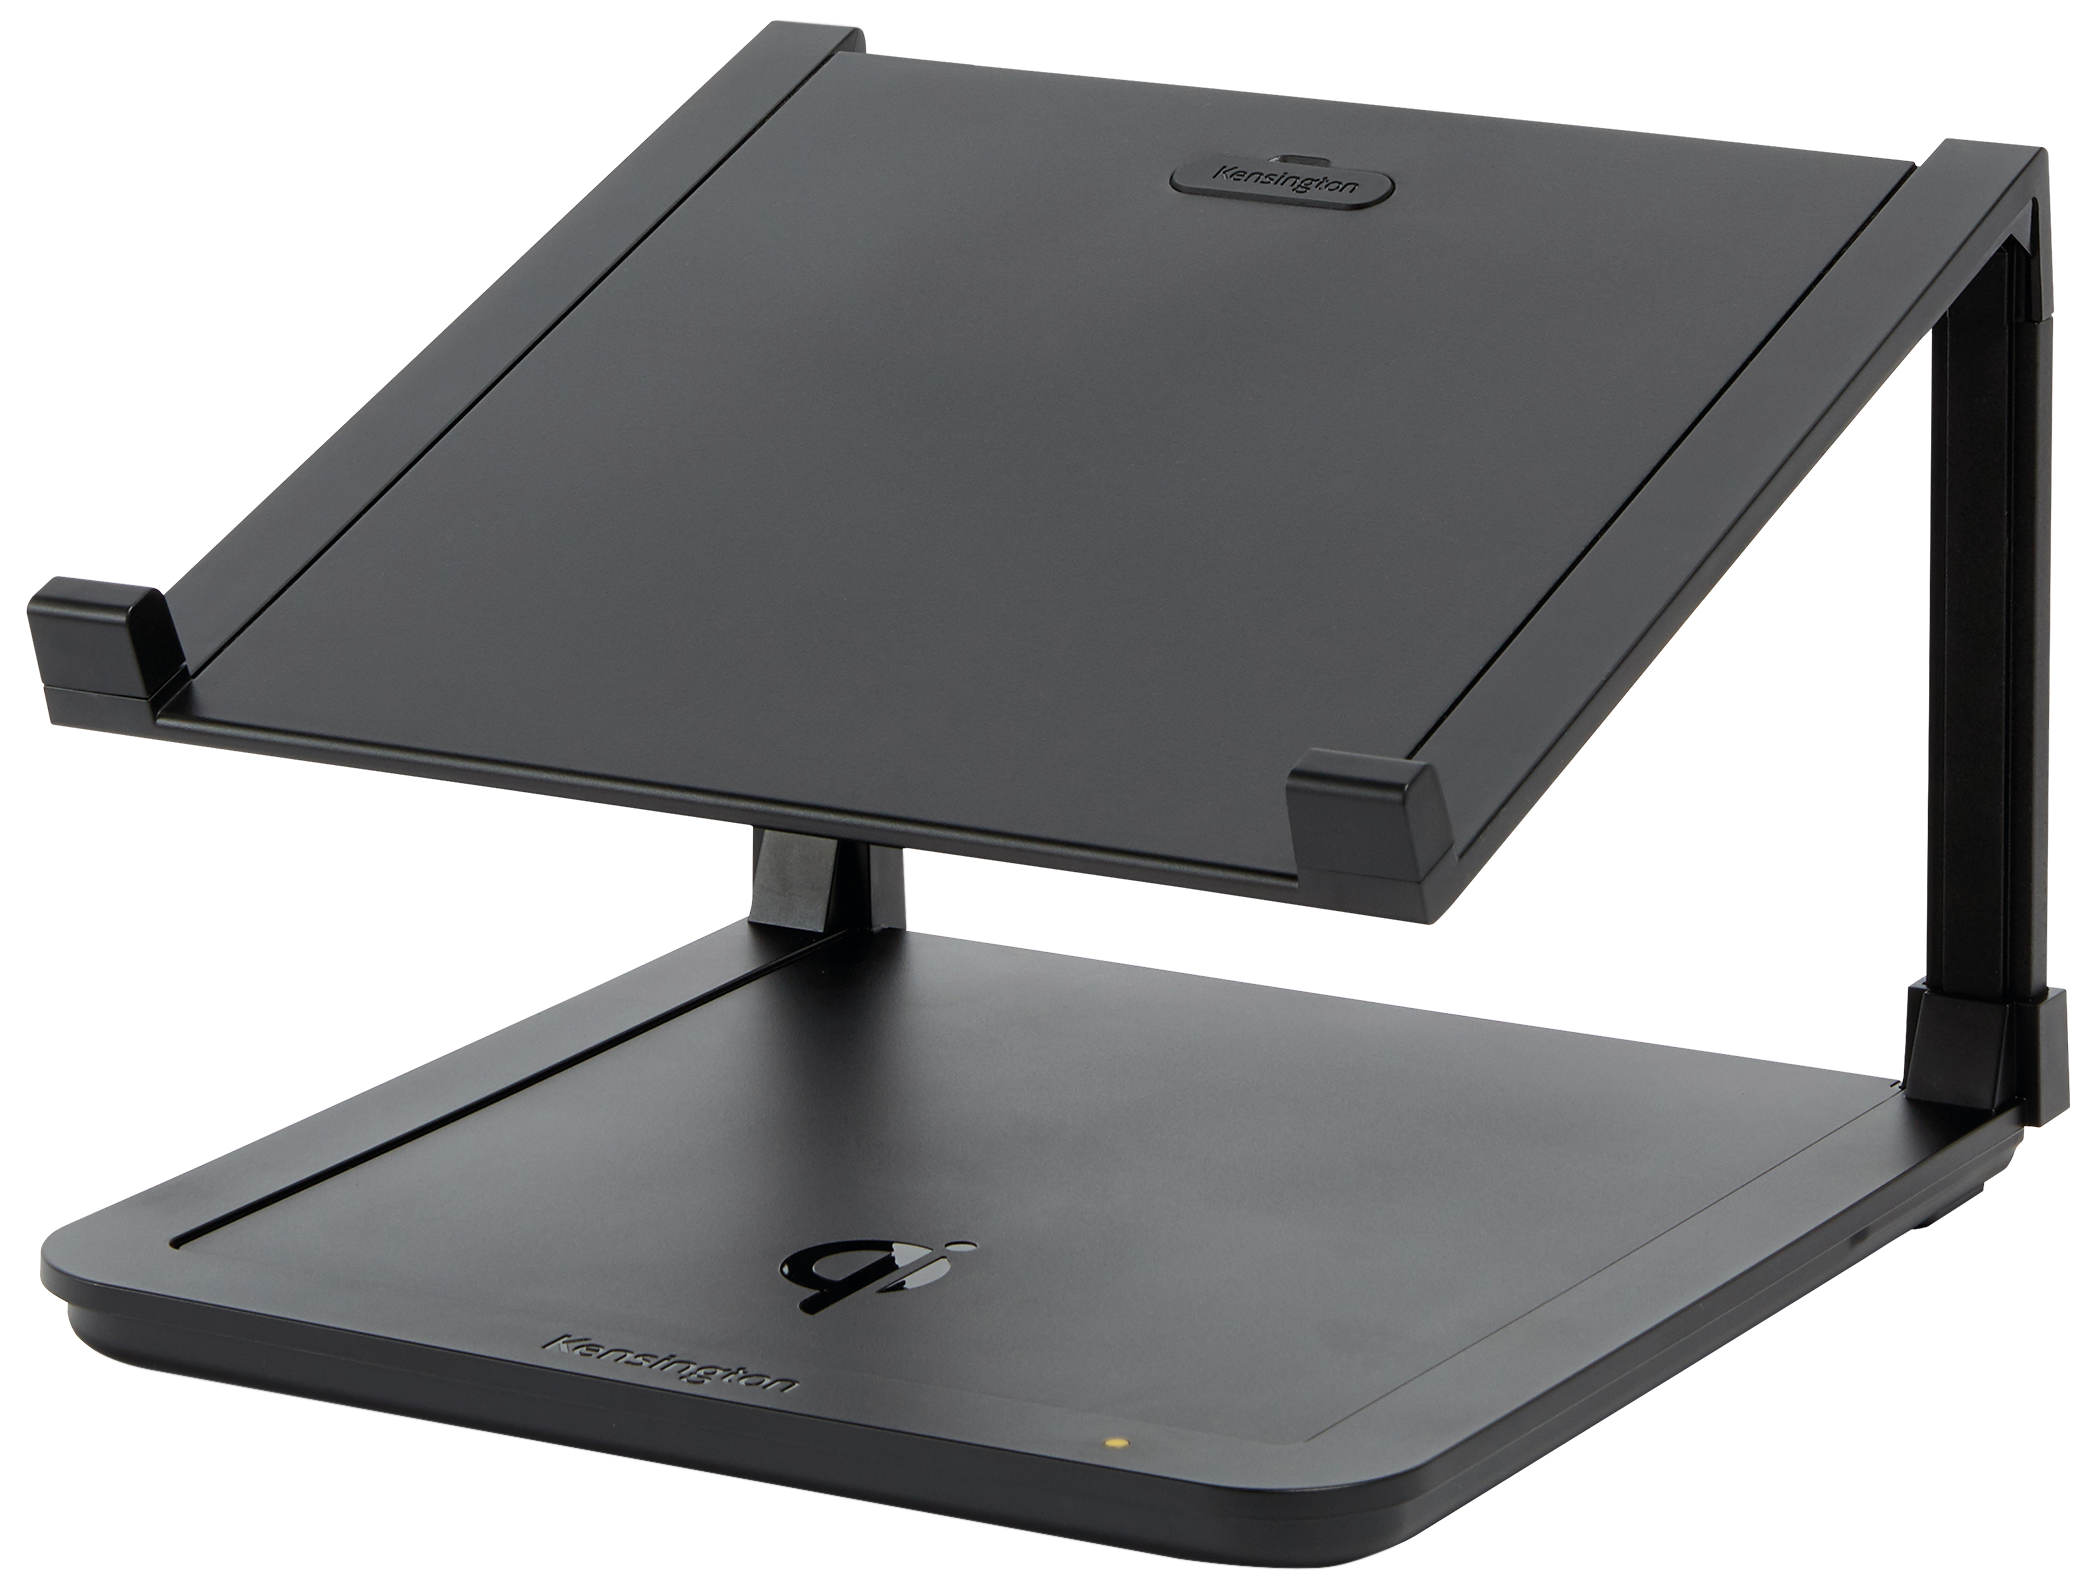 Kensington SmartFit Laptop Riser with Qi Wireless Charging Pad Become a multi-tasking master with this adjustable laptop riser that leaves room for Qi inductive device charging.